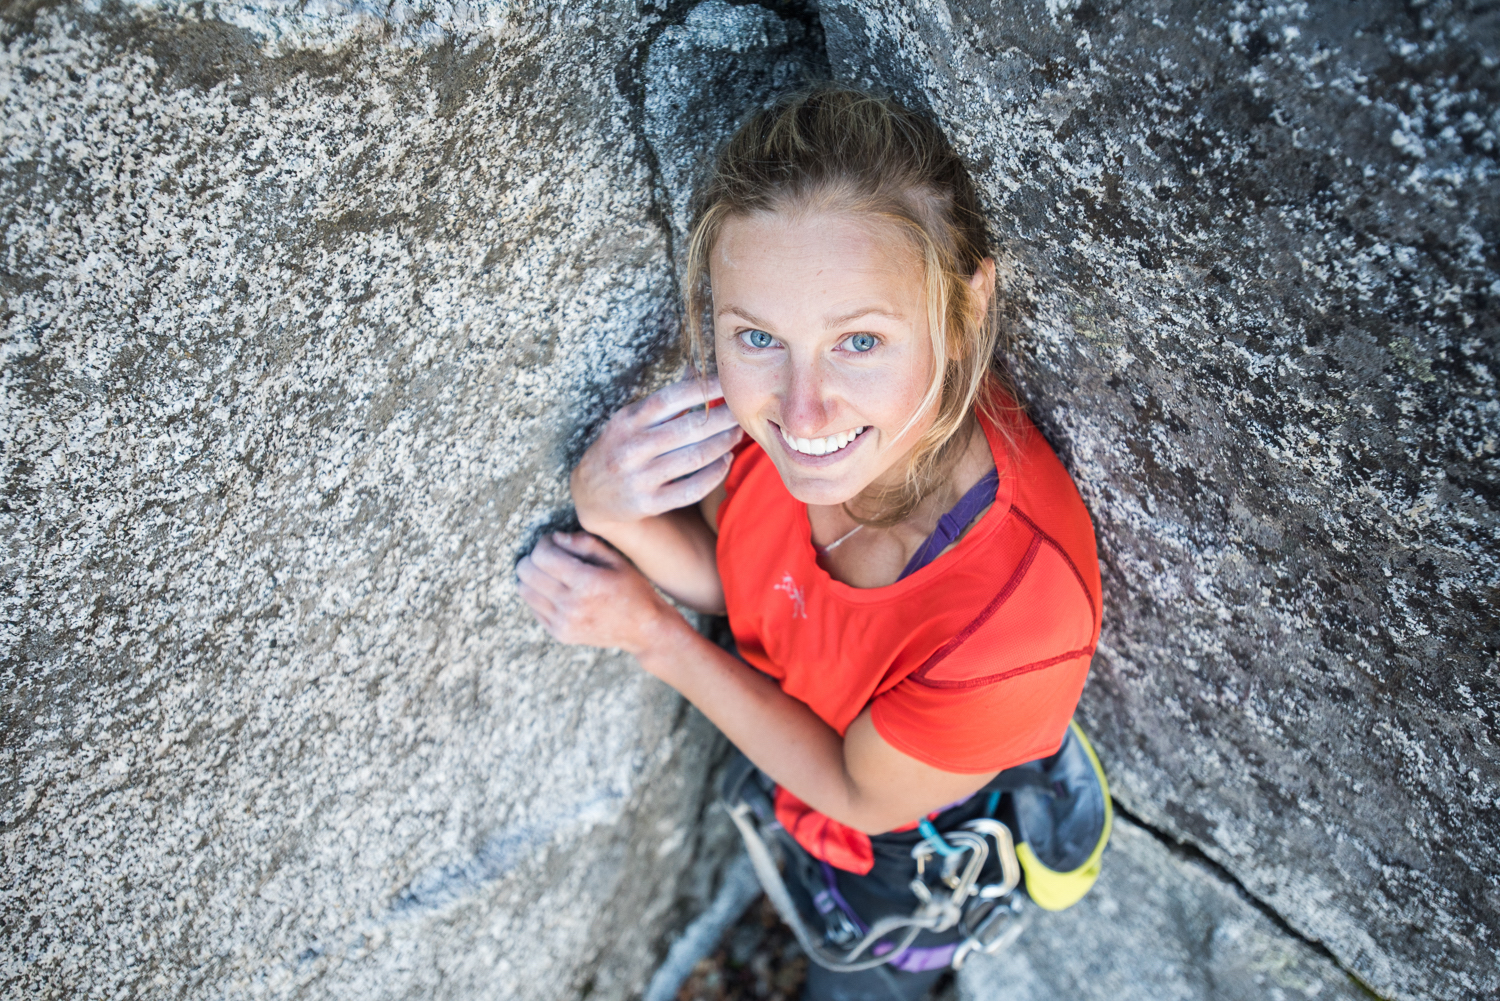 Brette Harrington. [Photo] Francois Lebeau, courtesy of the American Alpine Club